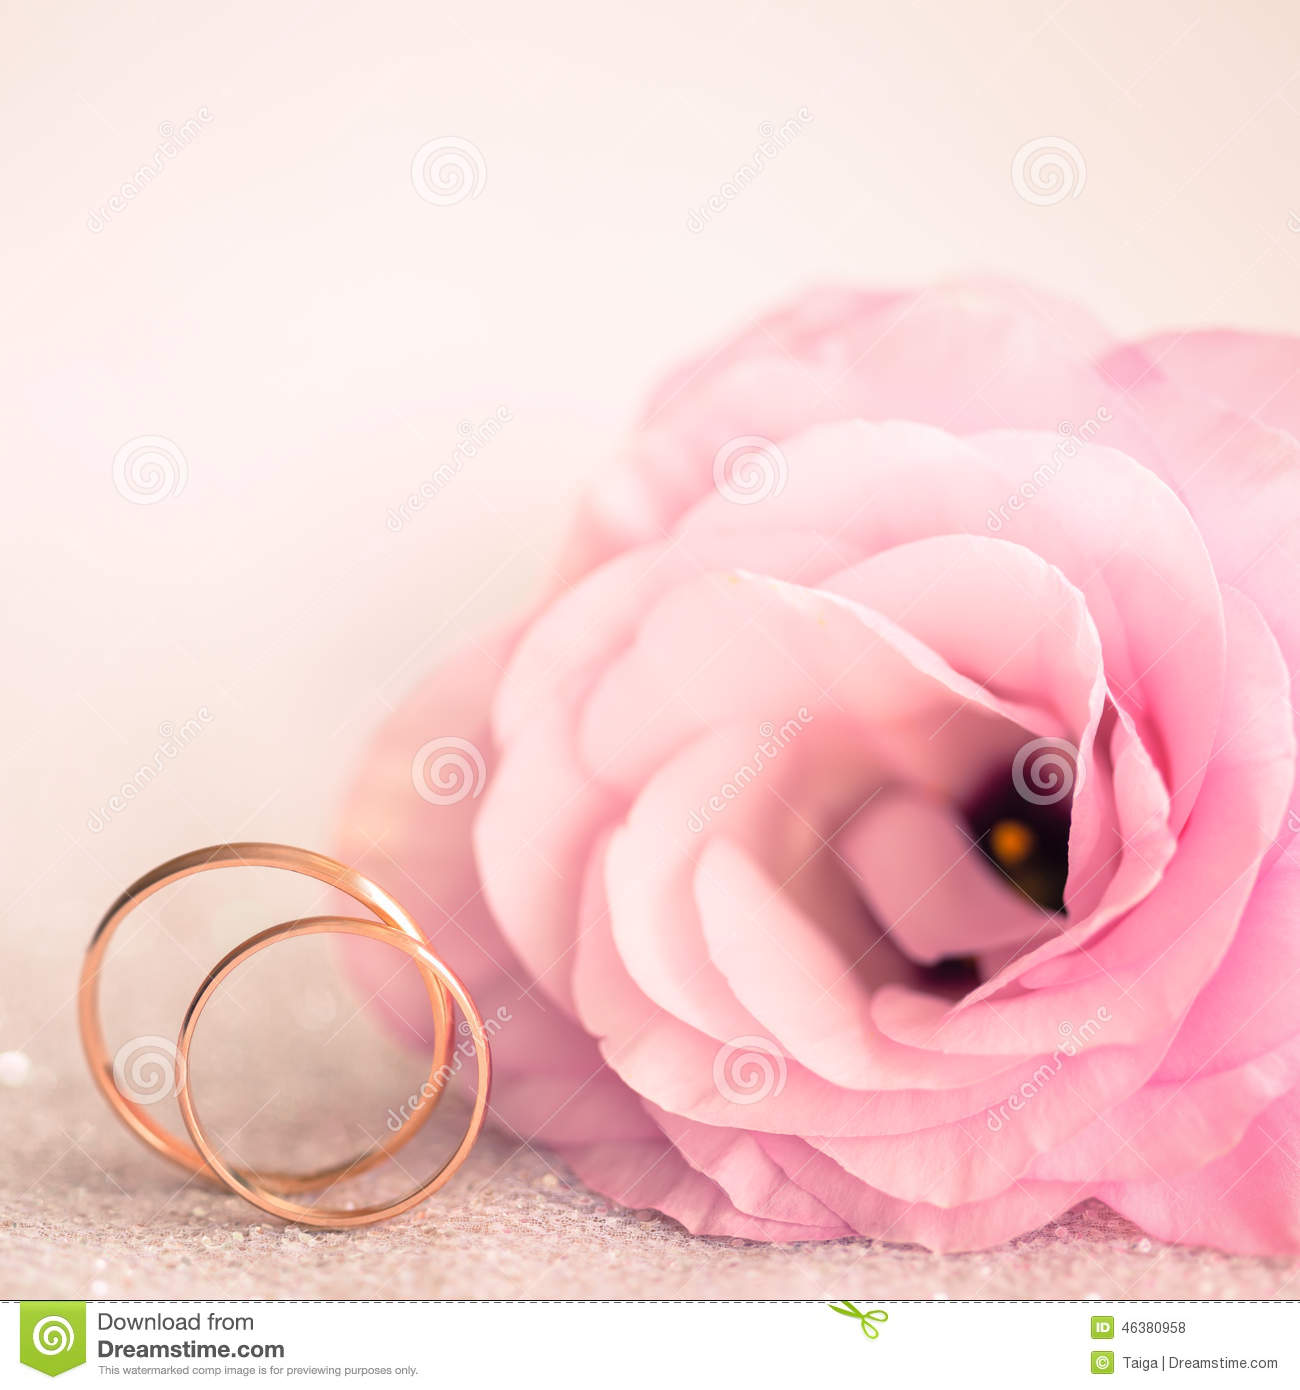 Delicate Wedding Background With Rings And Pink Flower Stock Photo ...